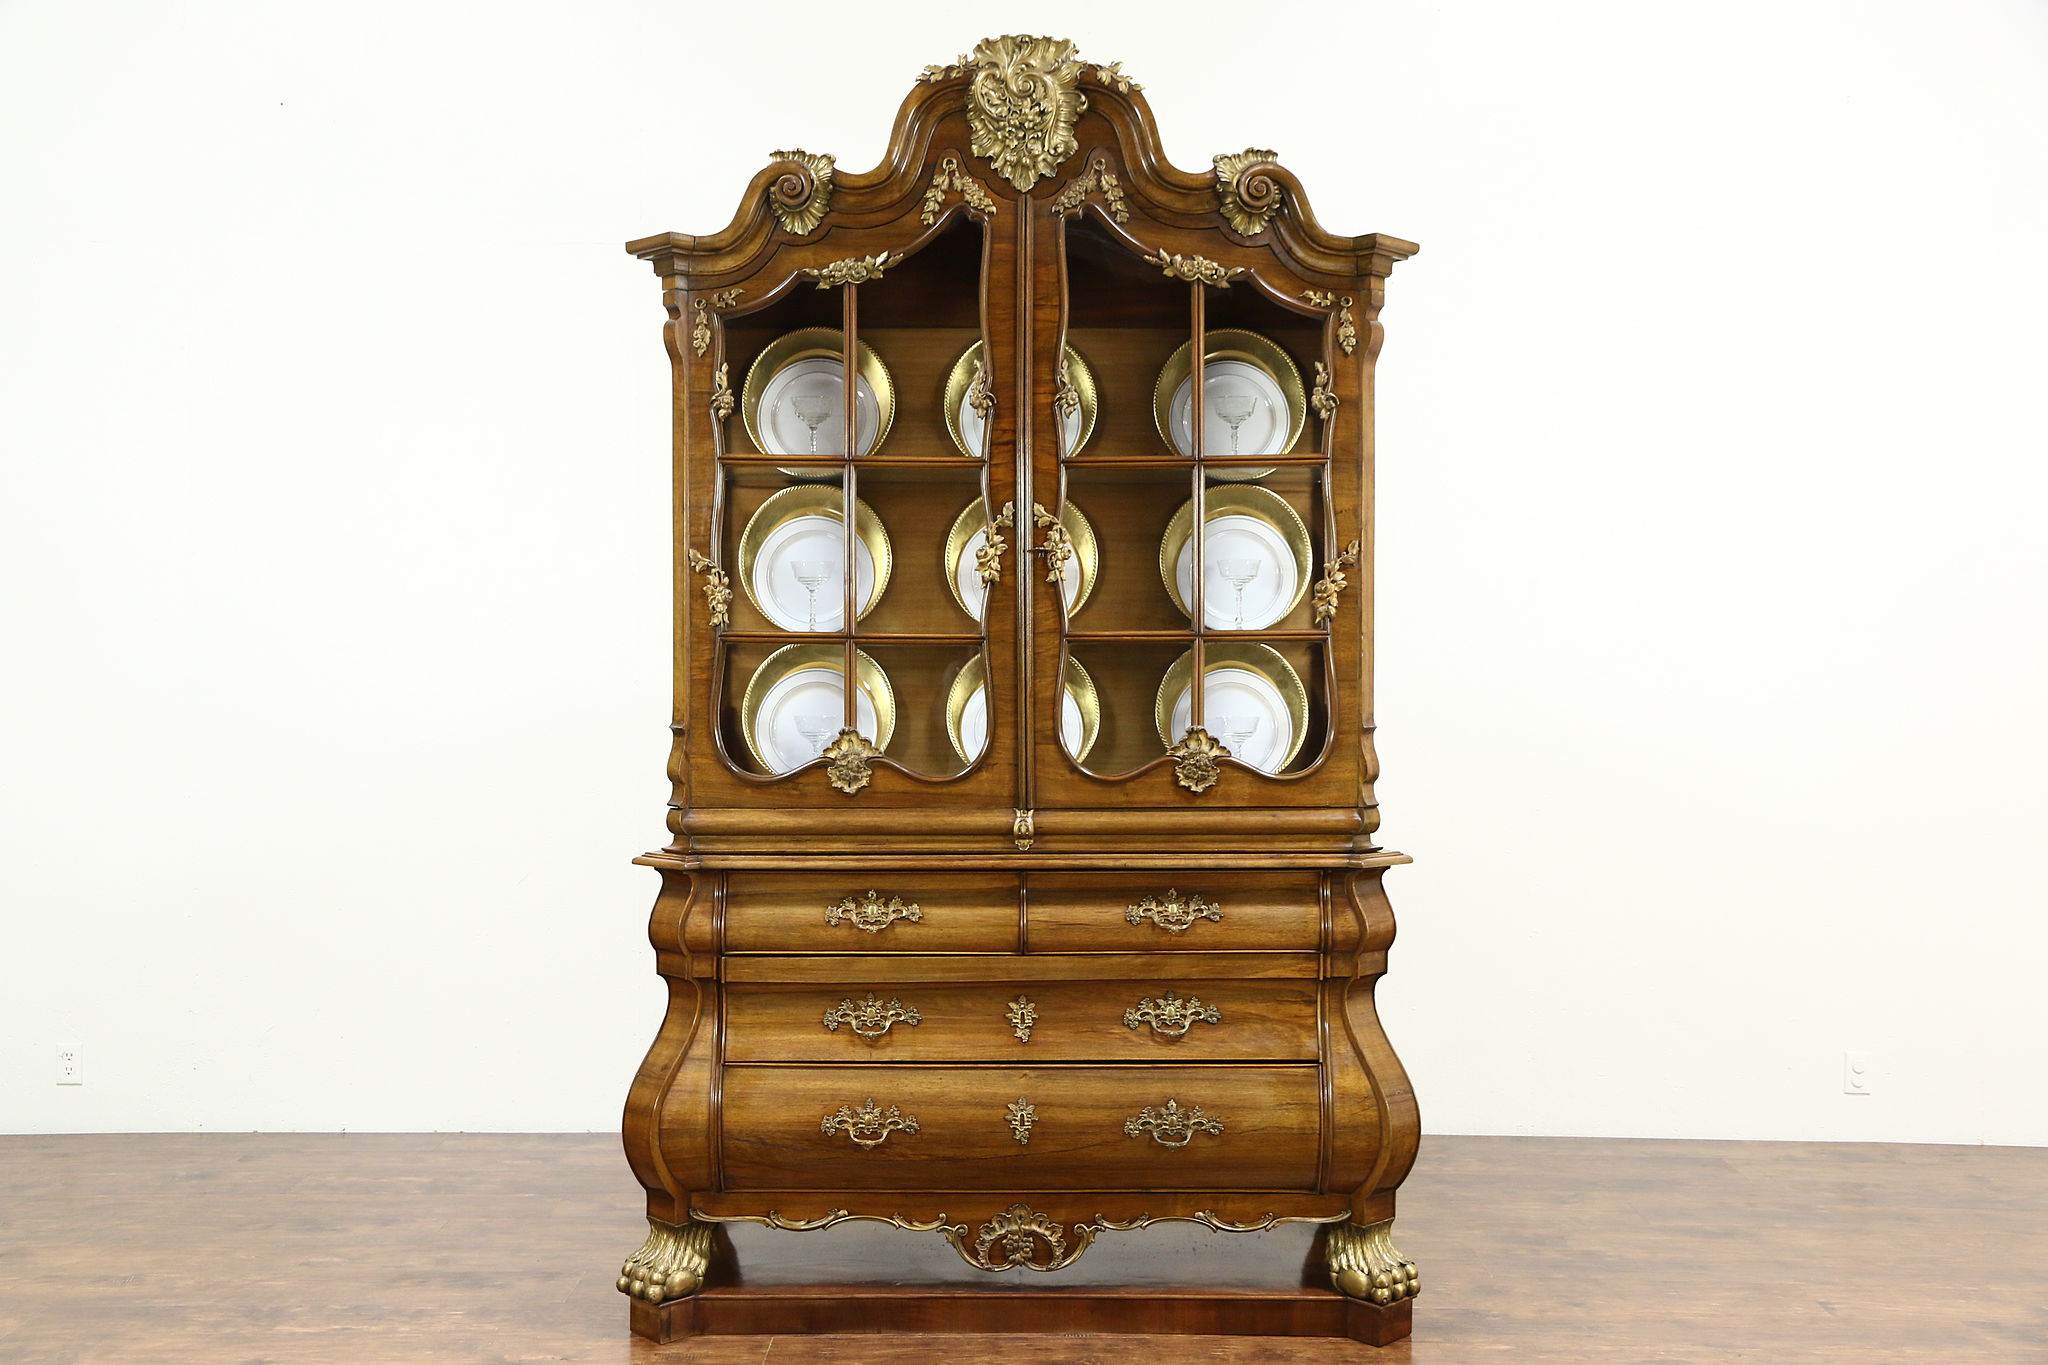 Merveilleux Baroque Bombe Antique 1910 China Or Curio Display Cabinet, Italy